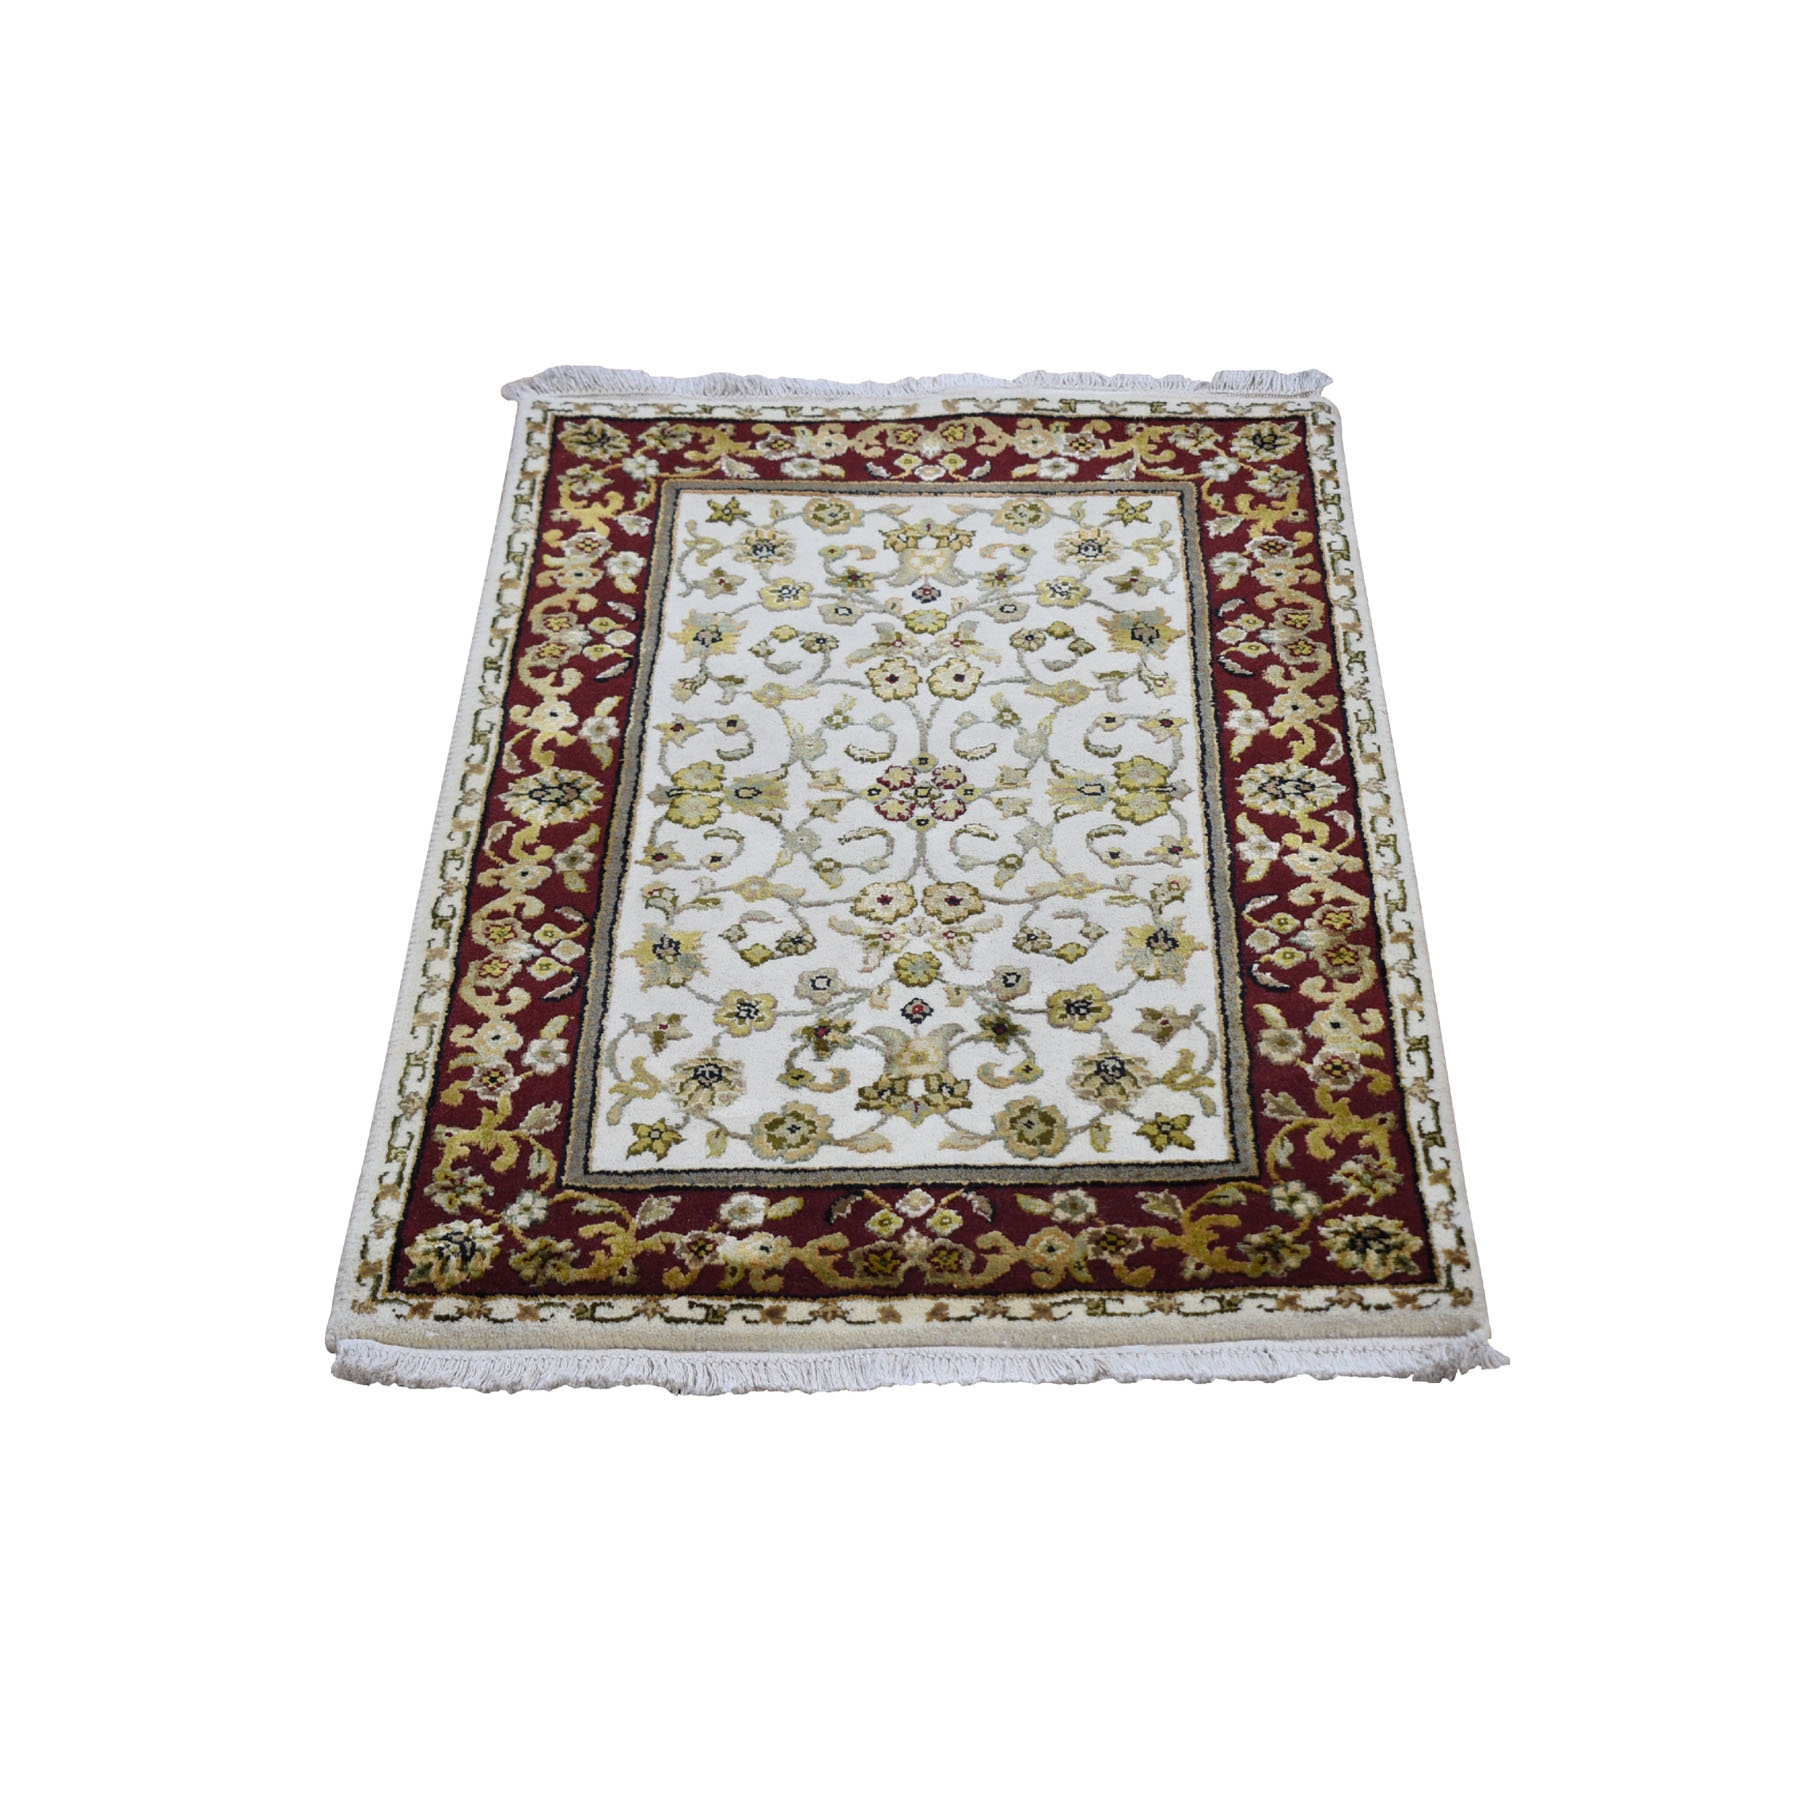 "2'x3'2"" Hand Woven Half Wool And Half Silk Rajasthan Hand Woven Oriental Rug"